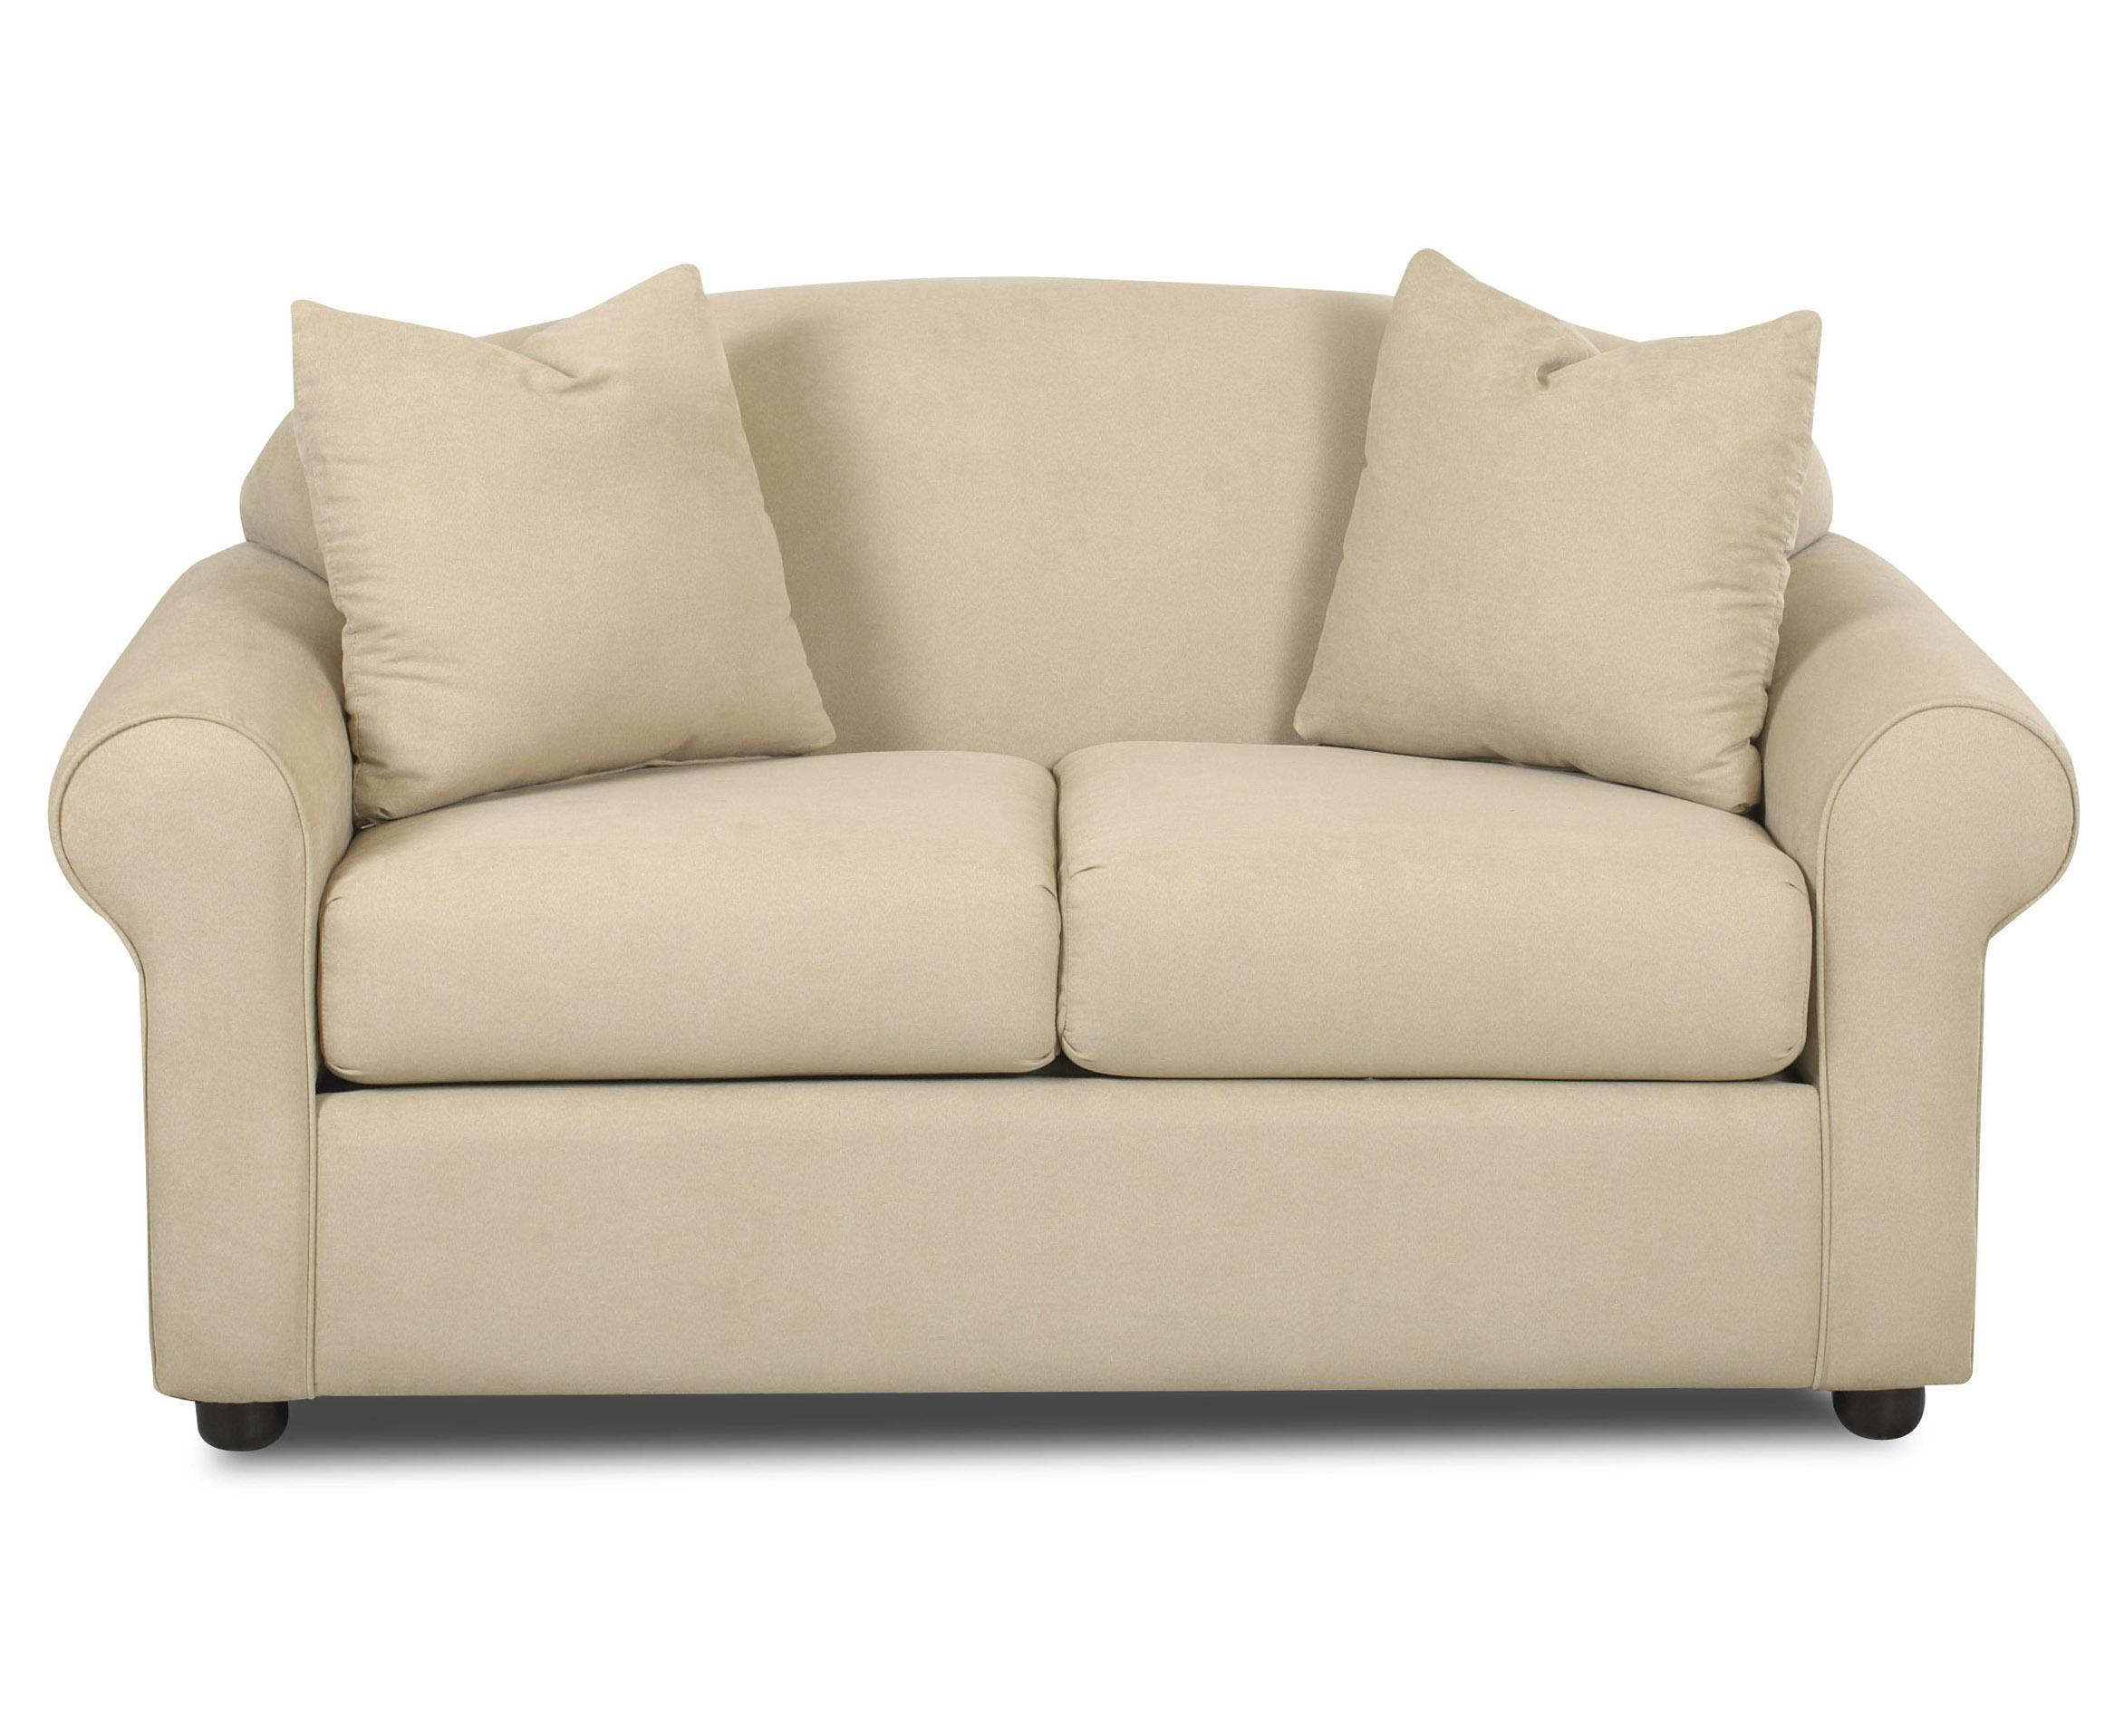 sofa covers low price charcoal grey sectional with chaise klaussner possibilities profile loveseat accent